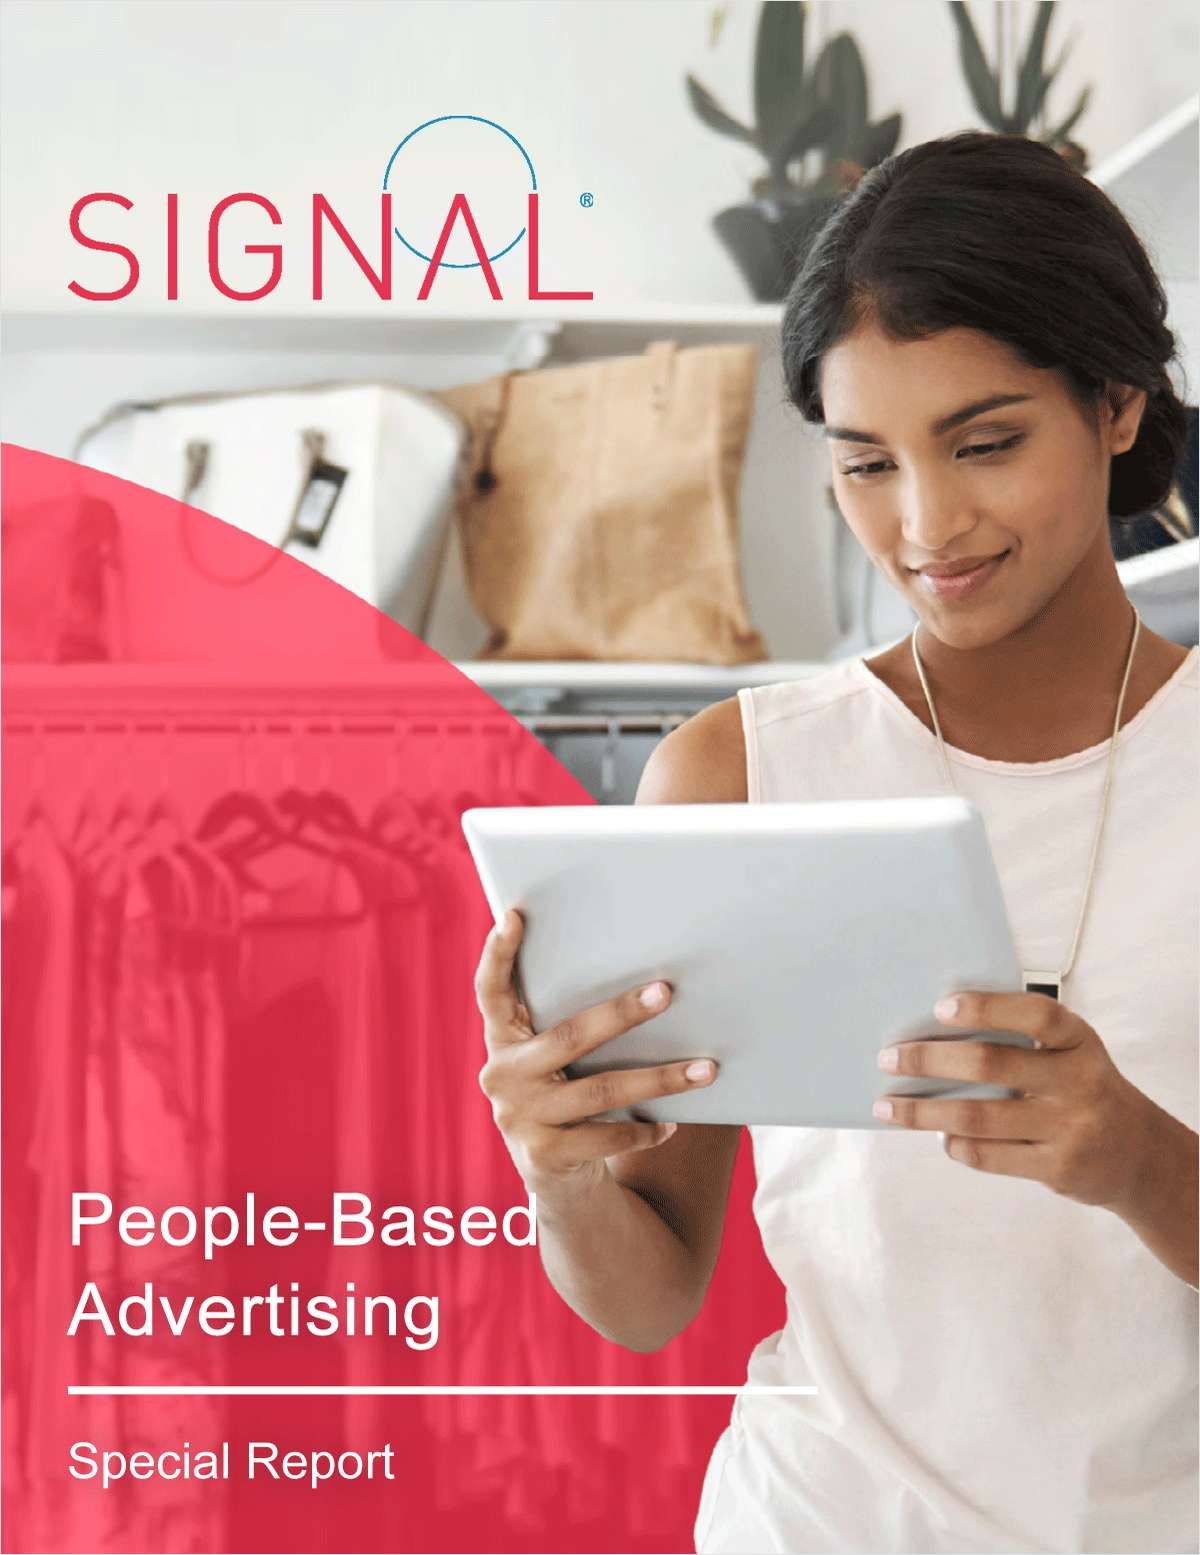 Learn Why 83% of Advertisers Are Reporting Superior Outcomes With People-Based Ads